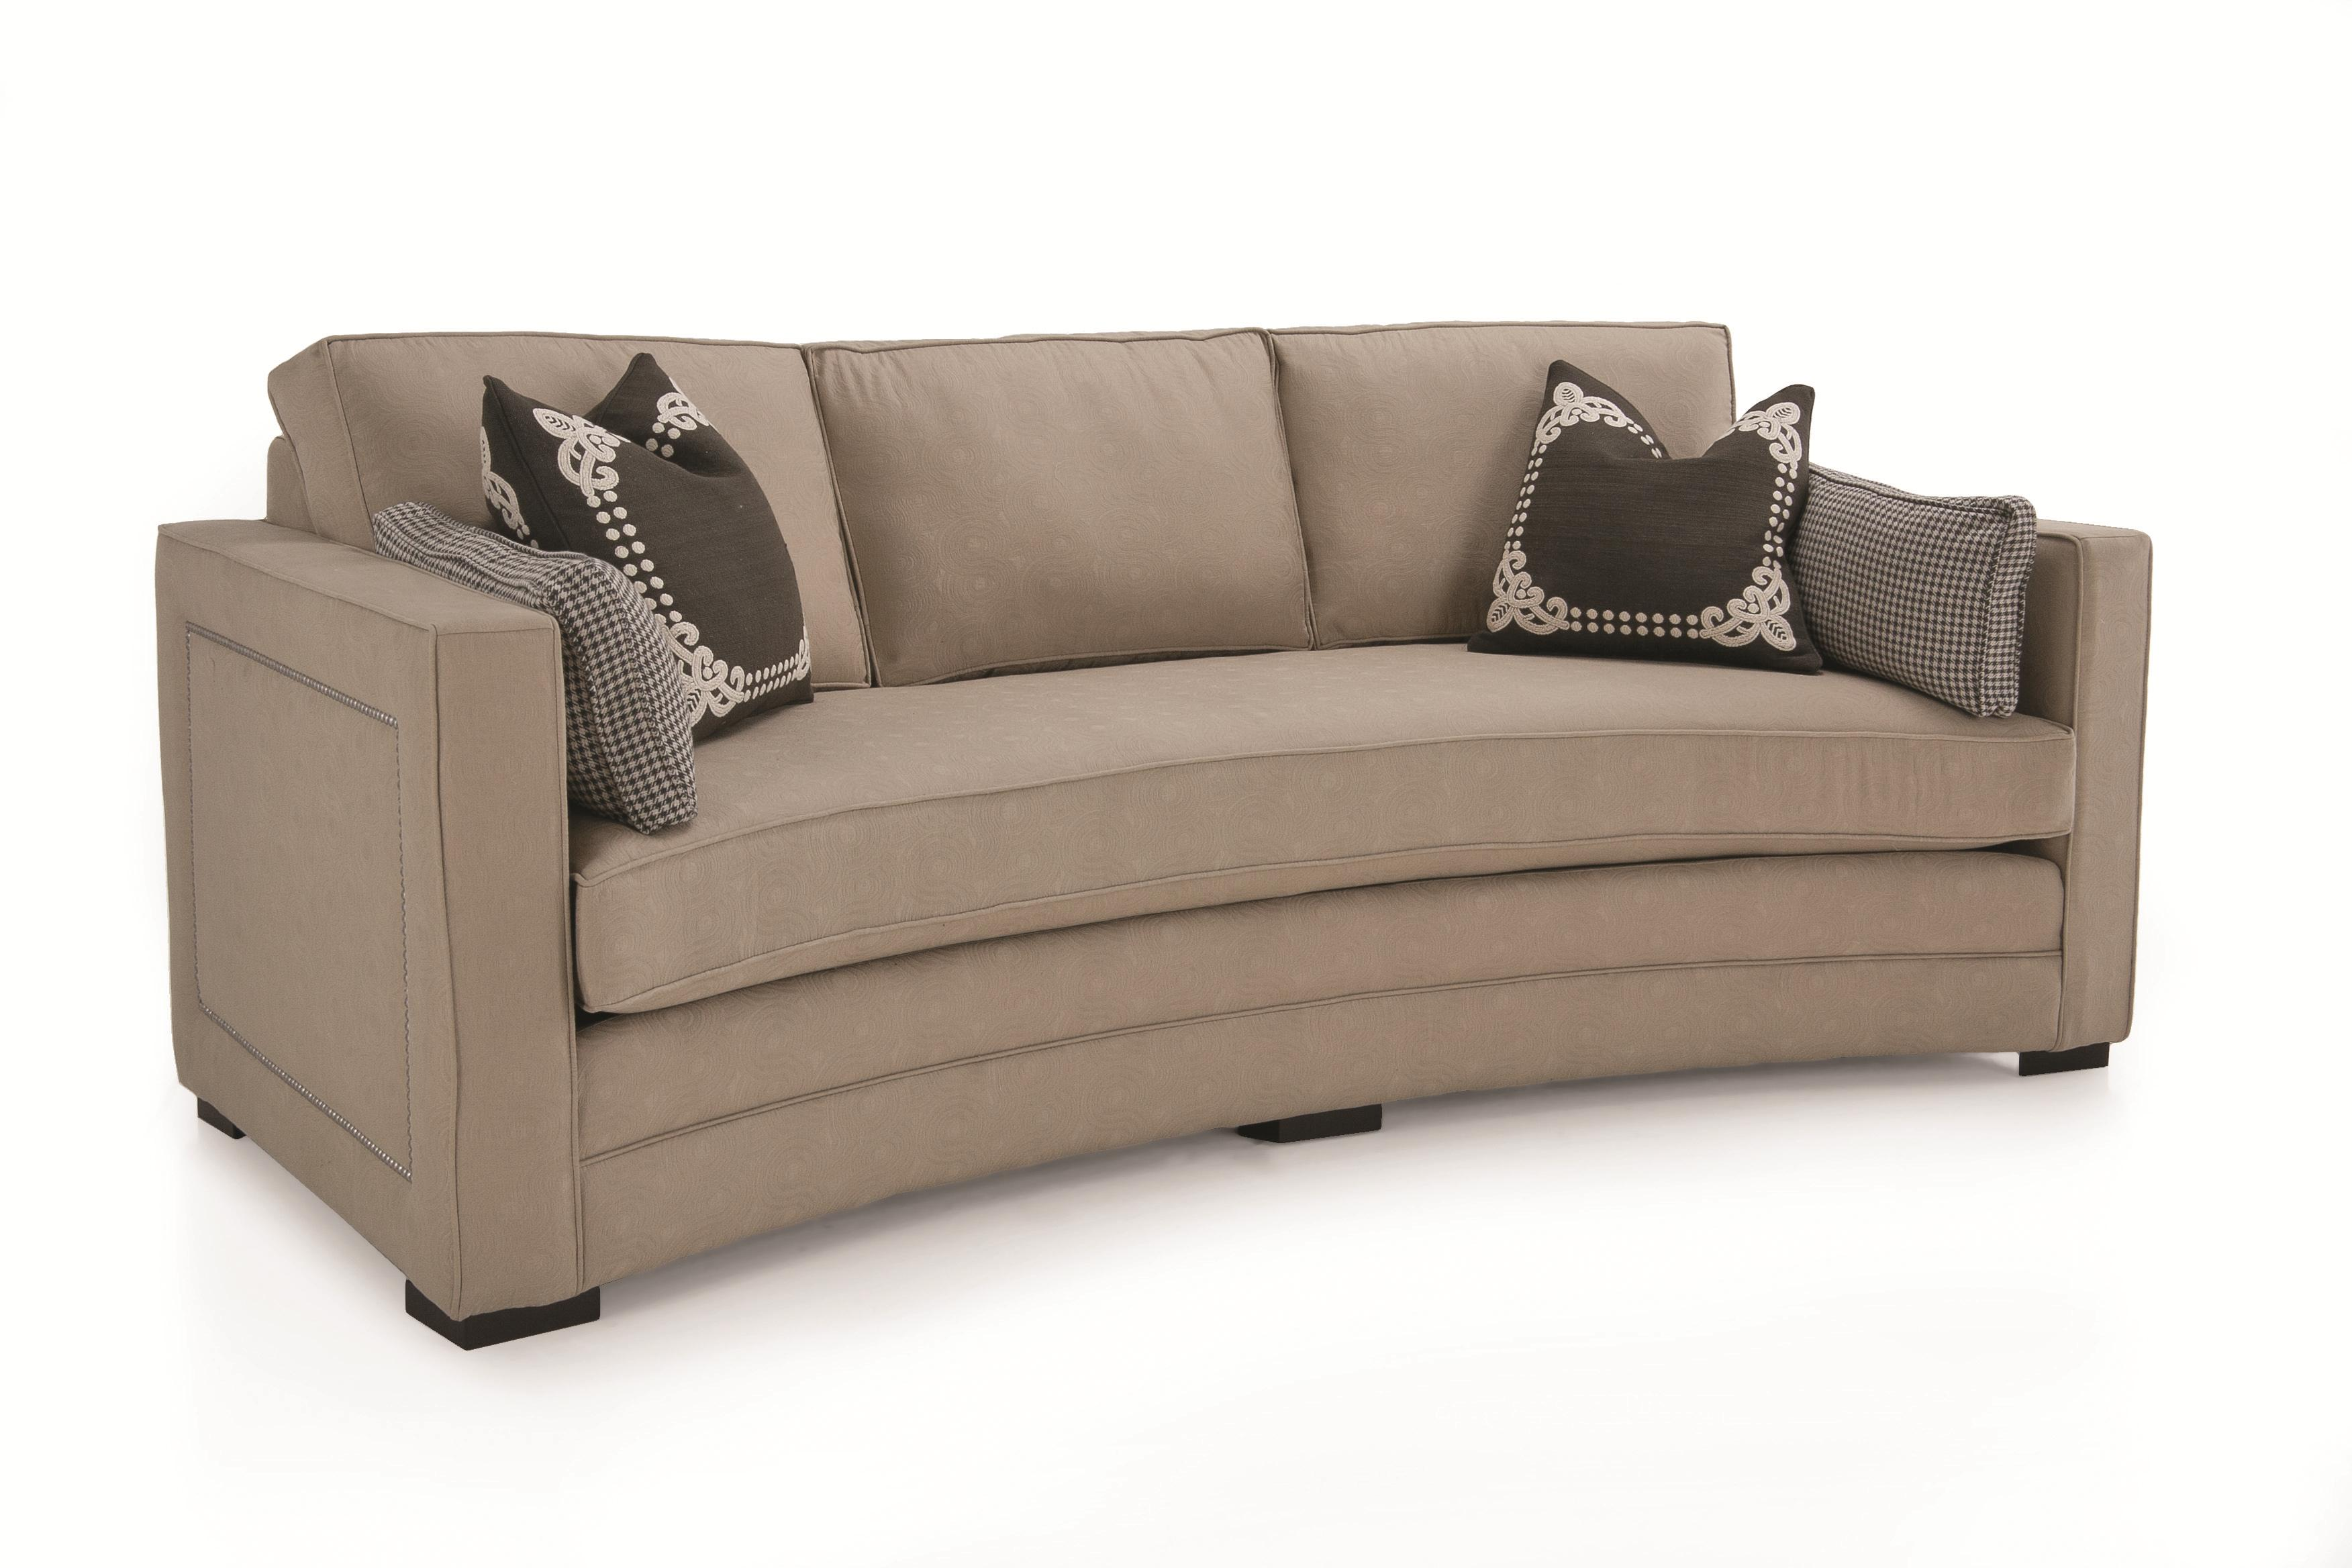 conversational sofa cover wooden with loose cushions decor rest limited edition 9015 conversation